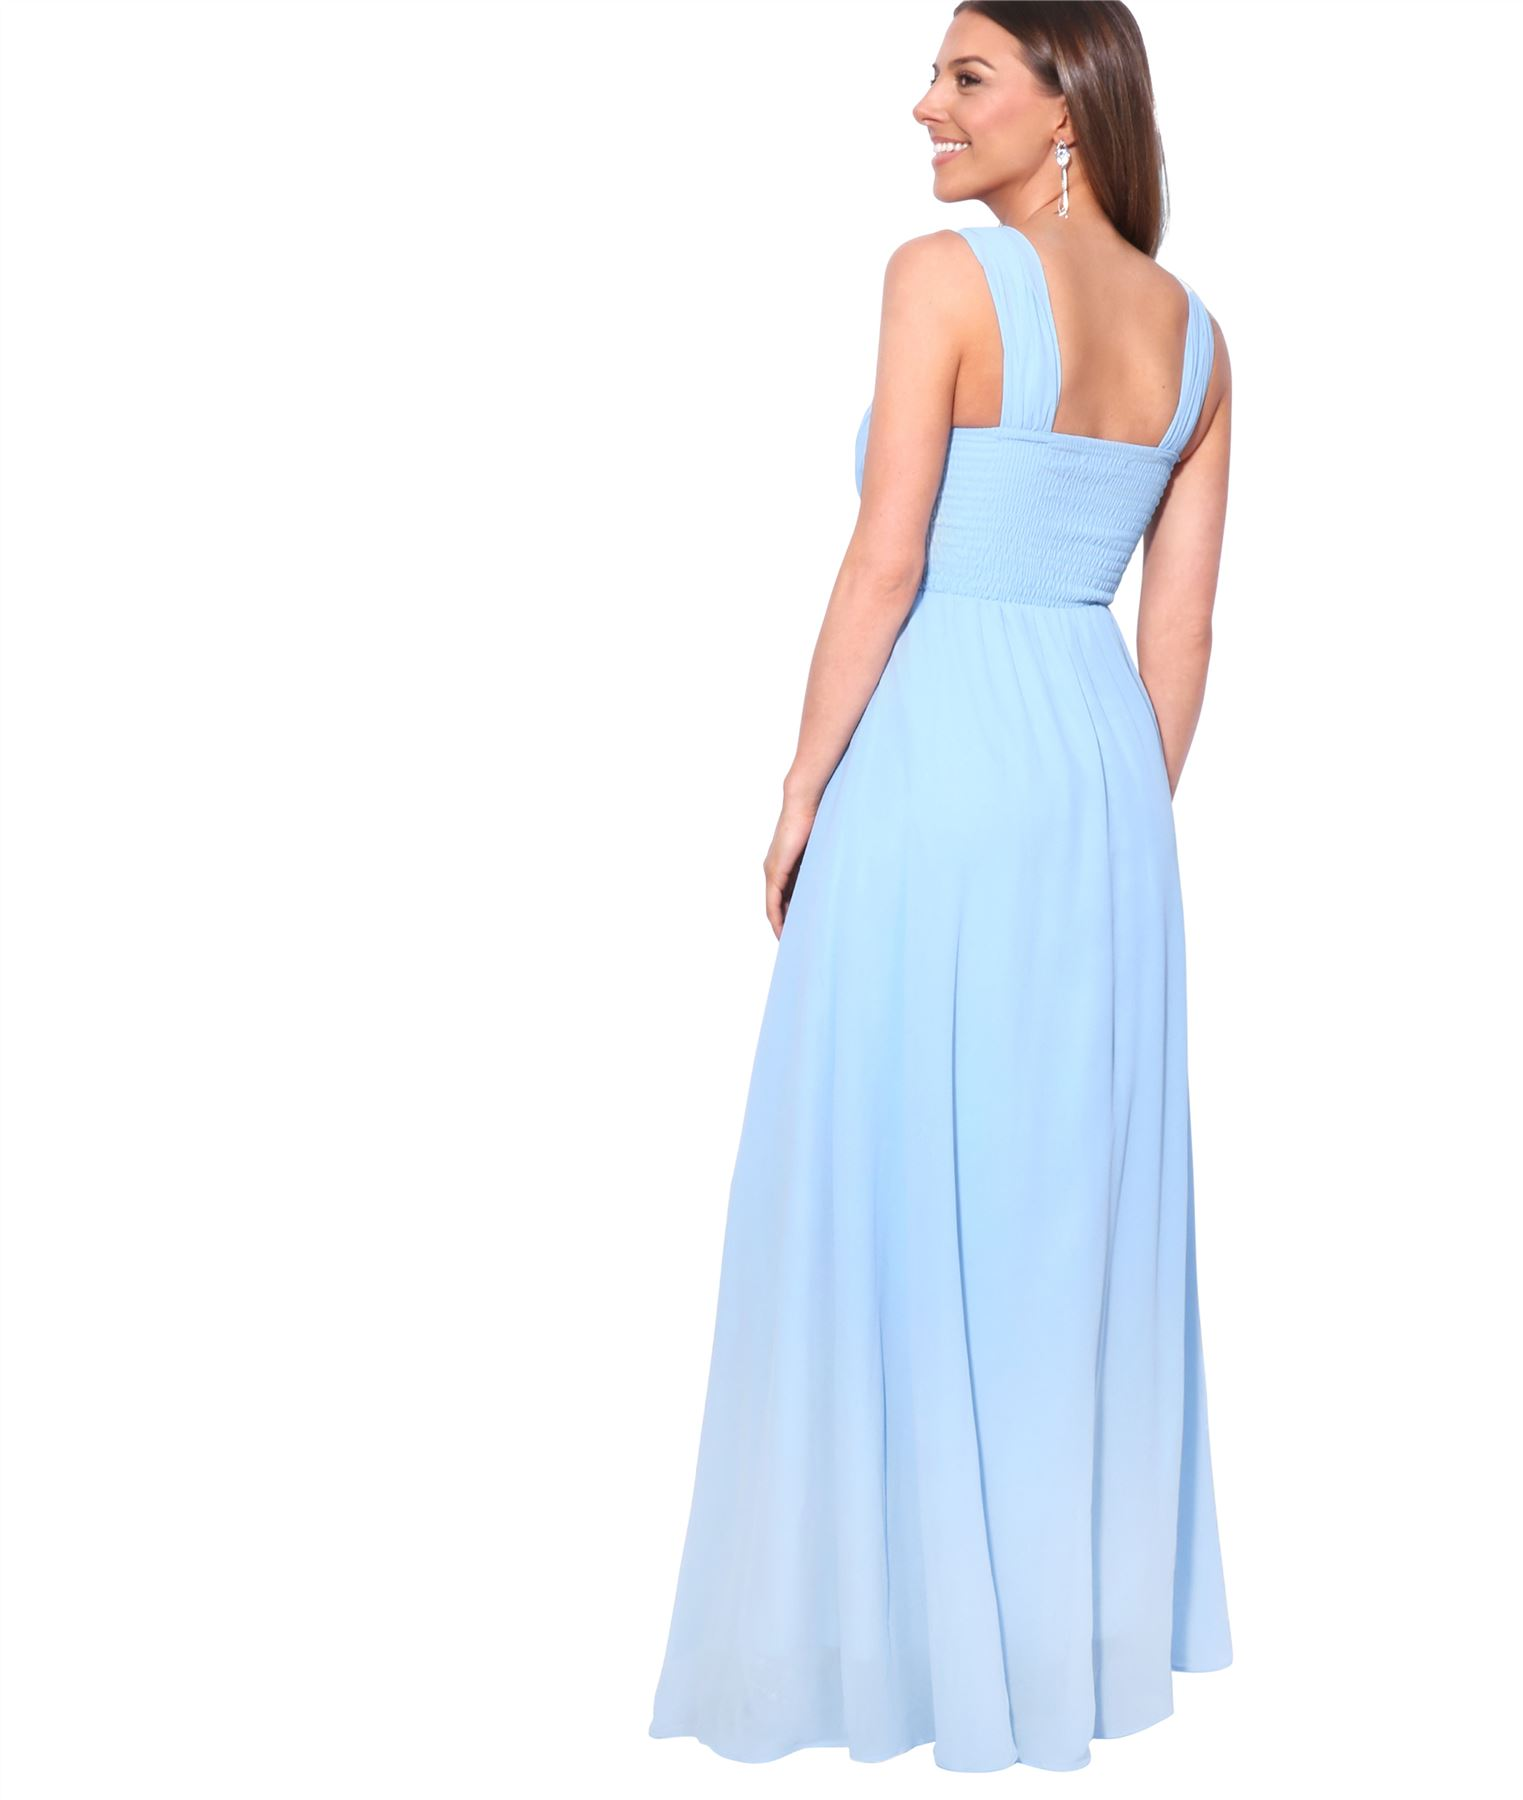 Womens-Formal-Evening-Wedding-Maxi-Prom-Dress-Long-On-Off-Shoulder-Ball-Gown thumbnail 6